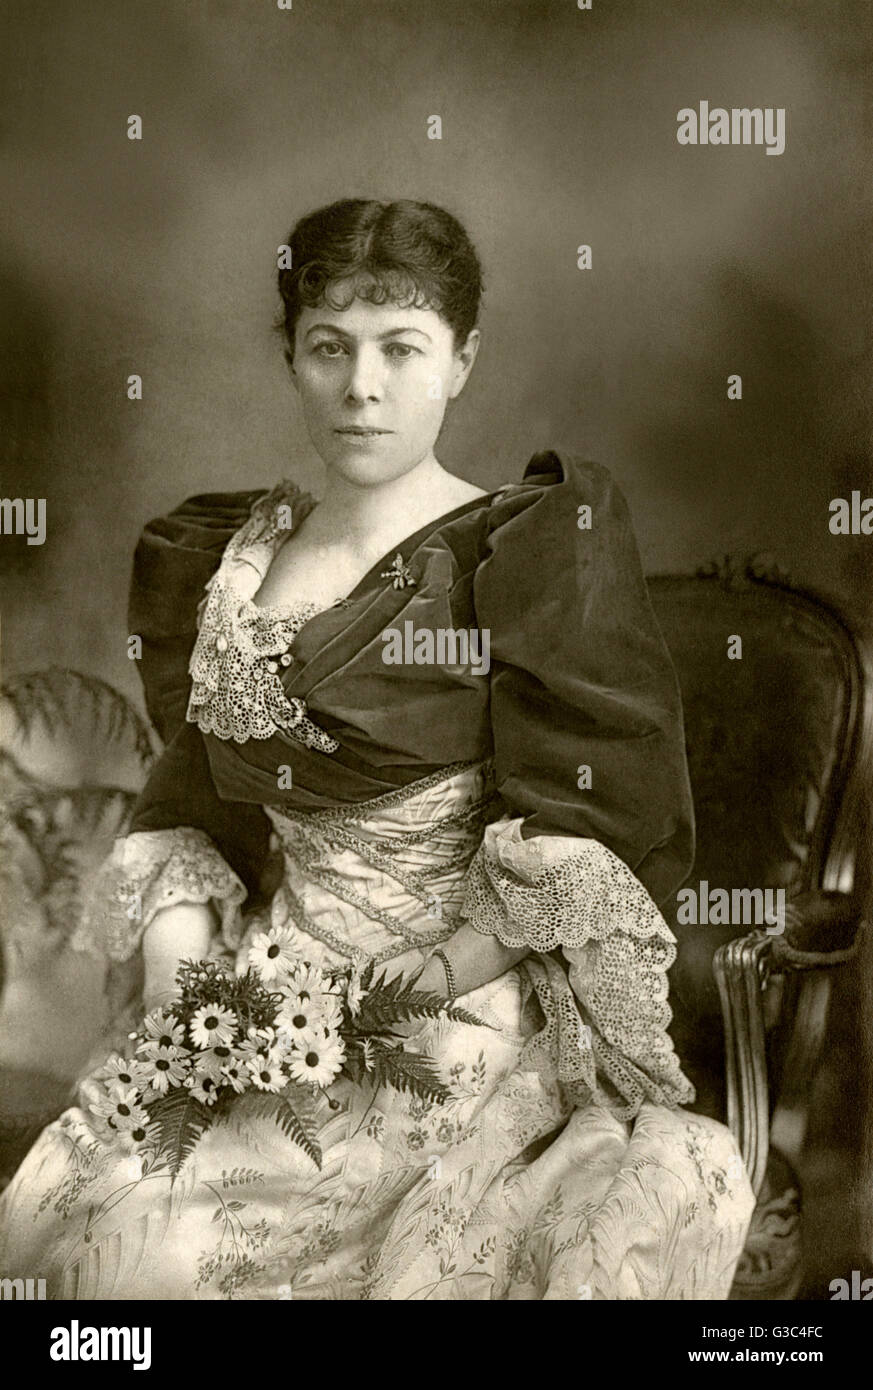 "Frances ""Fanny"" Whiteside Brough (1852-1914), Paris-born British stage actress, is remembered - Stock Image"